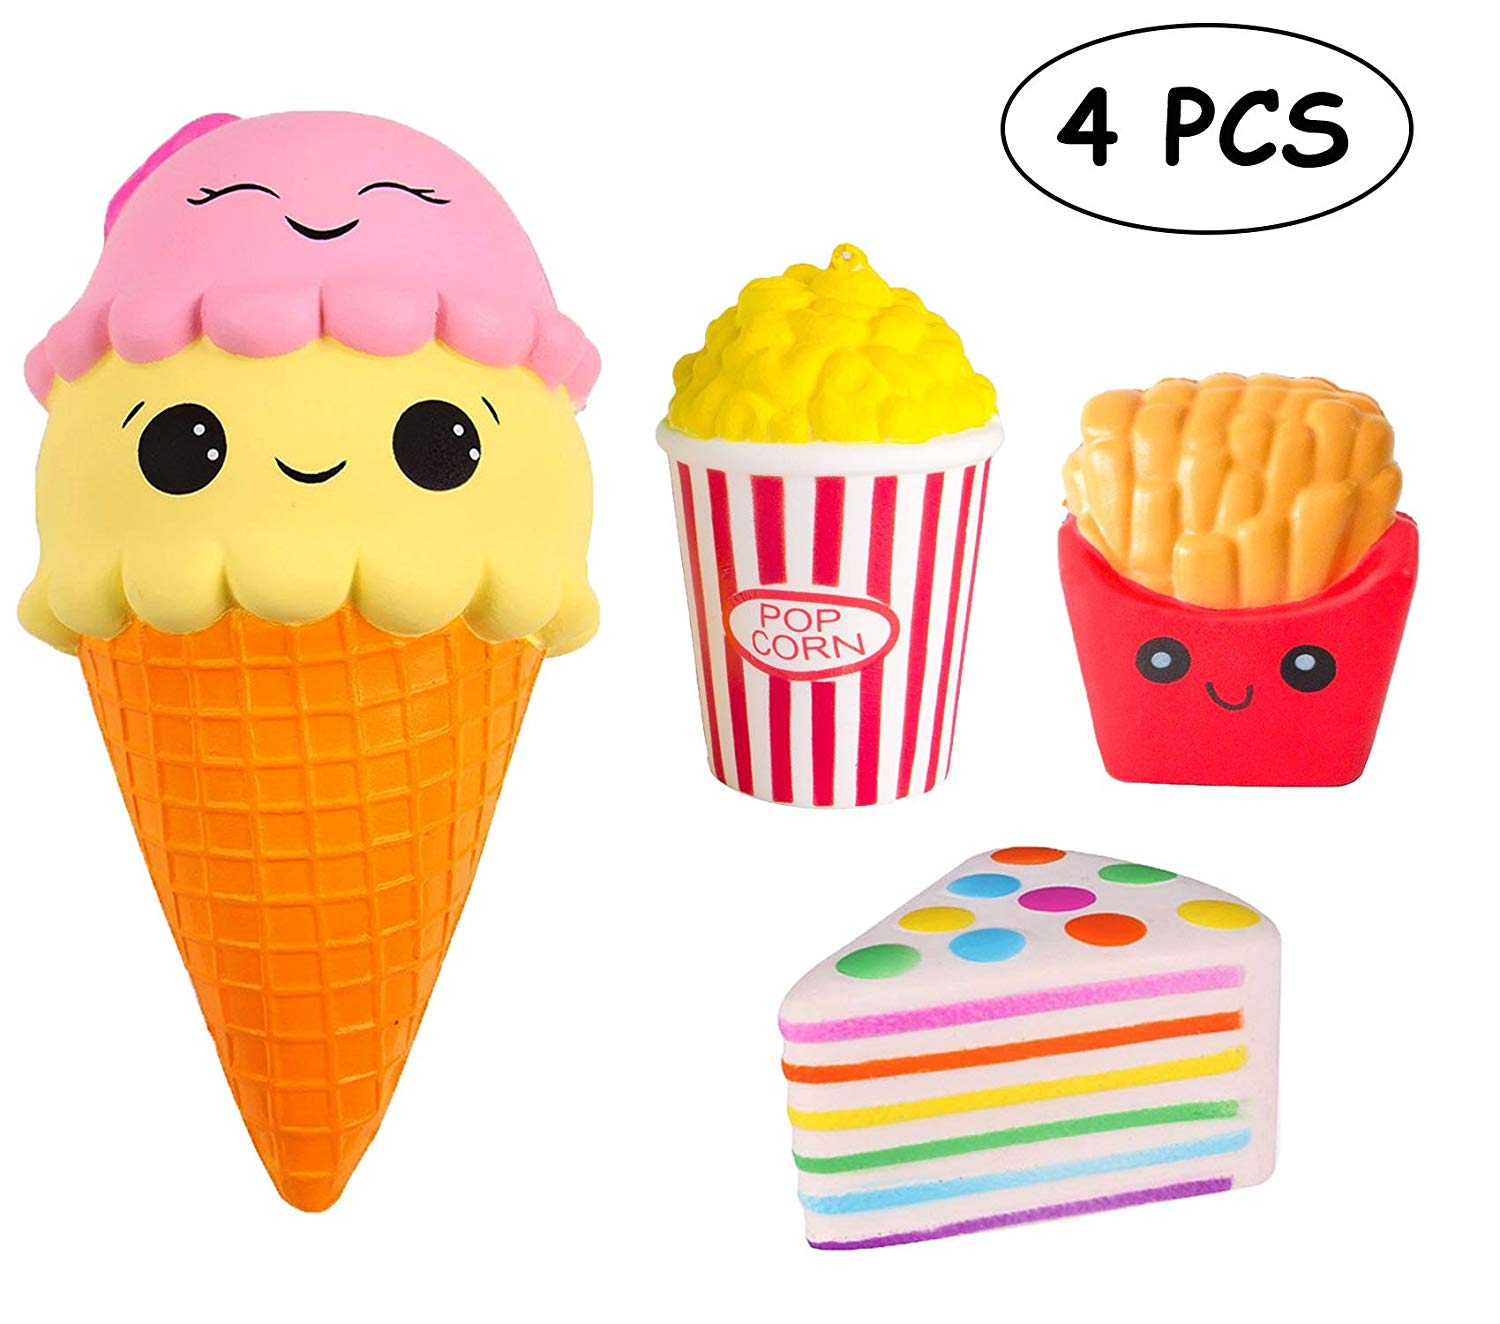 TOYHUYI 4pcs Jumbo Squishies Set Popcorn French Fries Ice Cream Scented Rainbow Triangle Cake Slow Rising Squeeze Toy Stress Relief Toy Decorations Hand Pillows Toy for Collection Gift